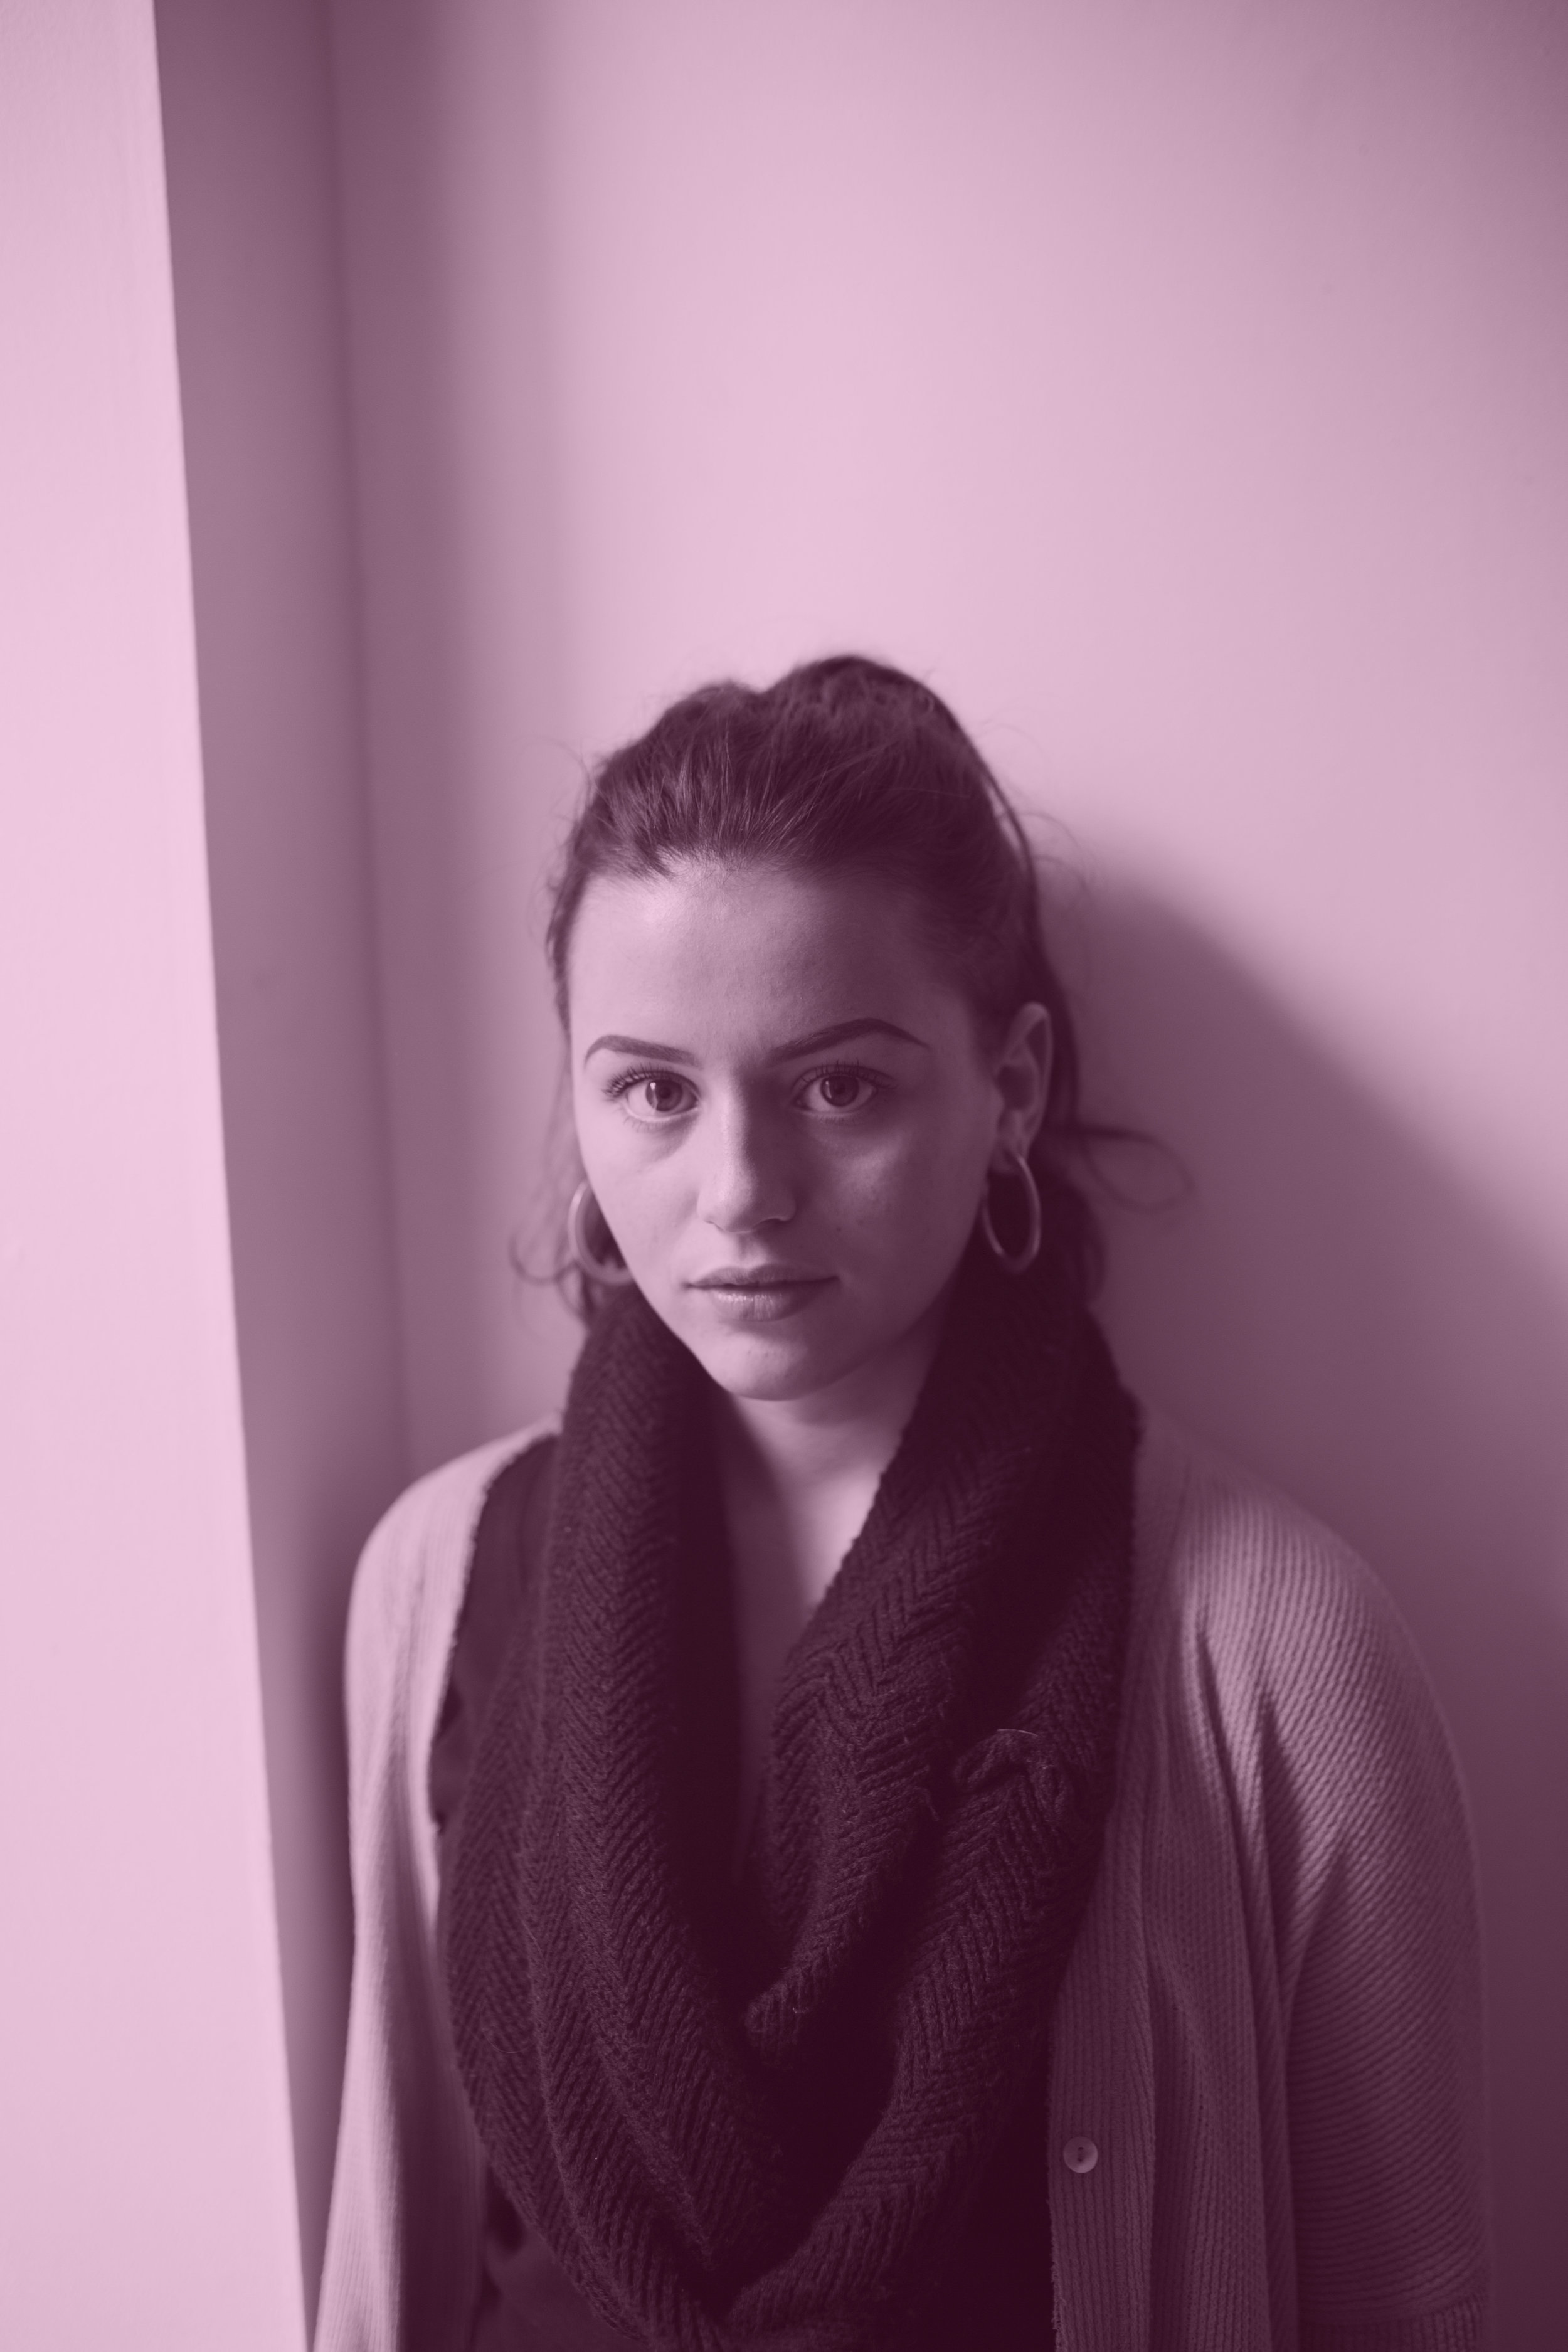 Chiara Wilkinson, Social Media Manager   Chiara is third year Art History and English Literature student from Edinburgh. Aside from her passion for writing, Chiara spends her time at life drawing classes, visiting art exhibitions, ticking off music festivals, and finding new inspiration for the ST.ART Instagram. She joined ST.ART to become more involved with the abundance of creative energy in St Andrews, and encourages artists of any sort to get involved - hoping to employ the social media as a platform to inspire and promote young creative talent. Contact her at  cw227@st-andrews.ac.uk .